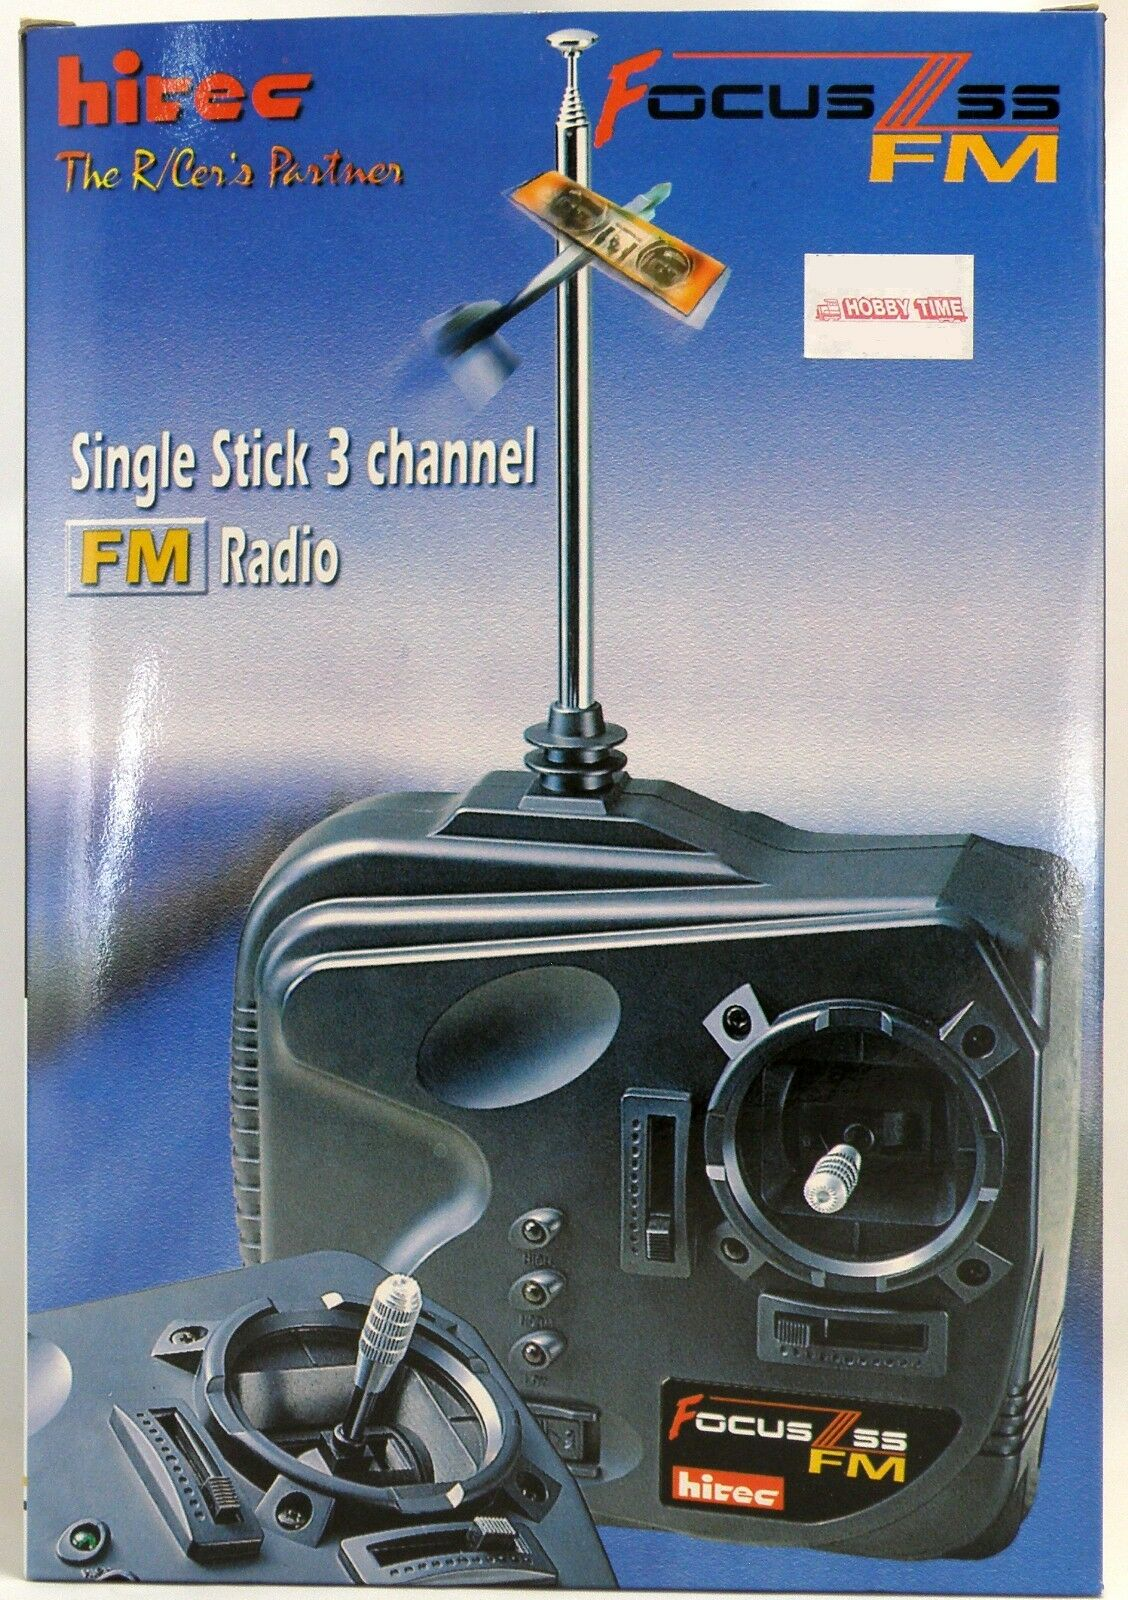 Hitec Focus 3ss Fm Single Stick 3 Channel Radio - Channel 24 - 72.270mhz